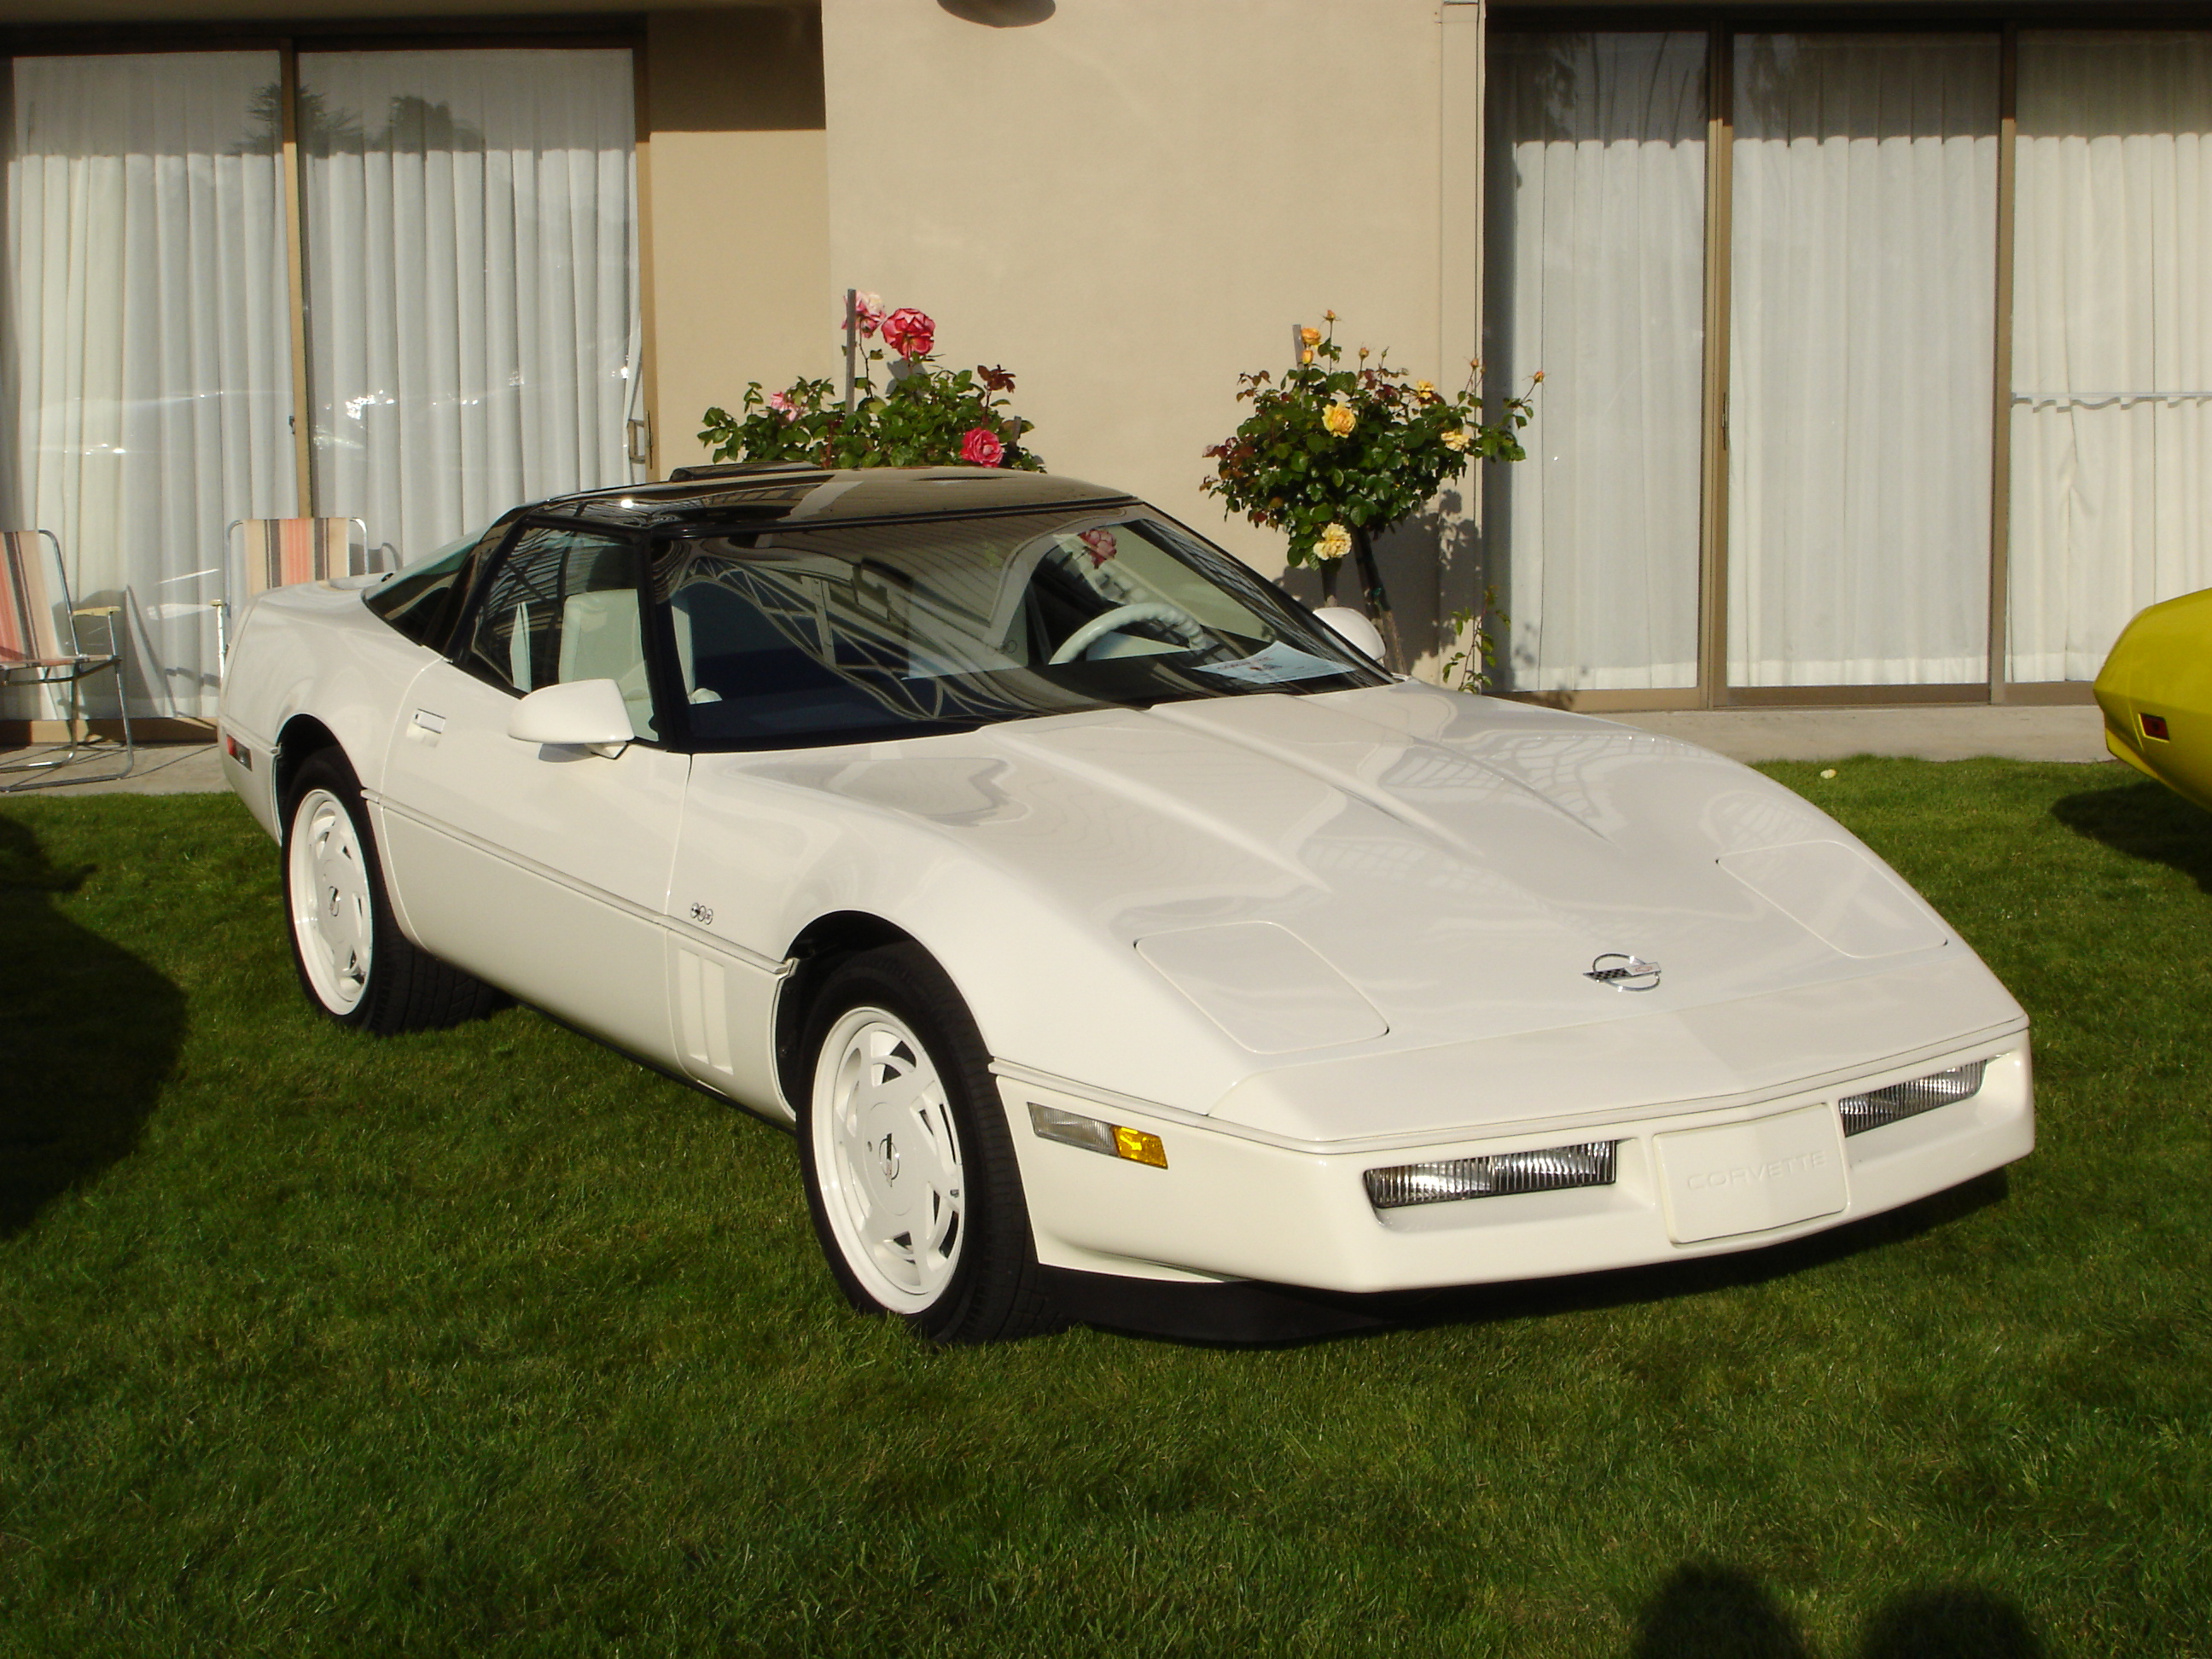 Marci's 1988 Coupe